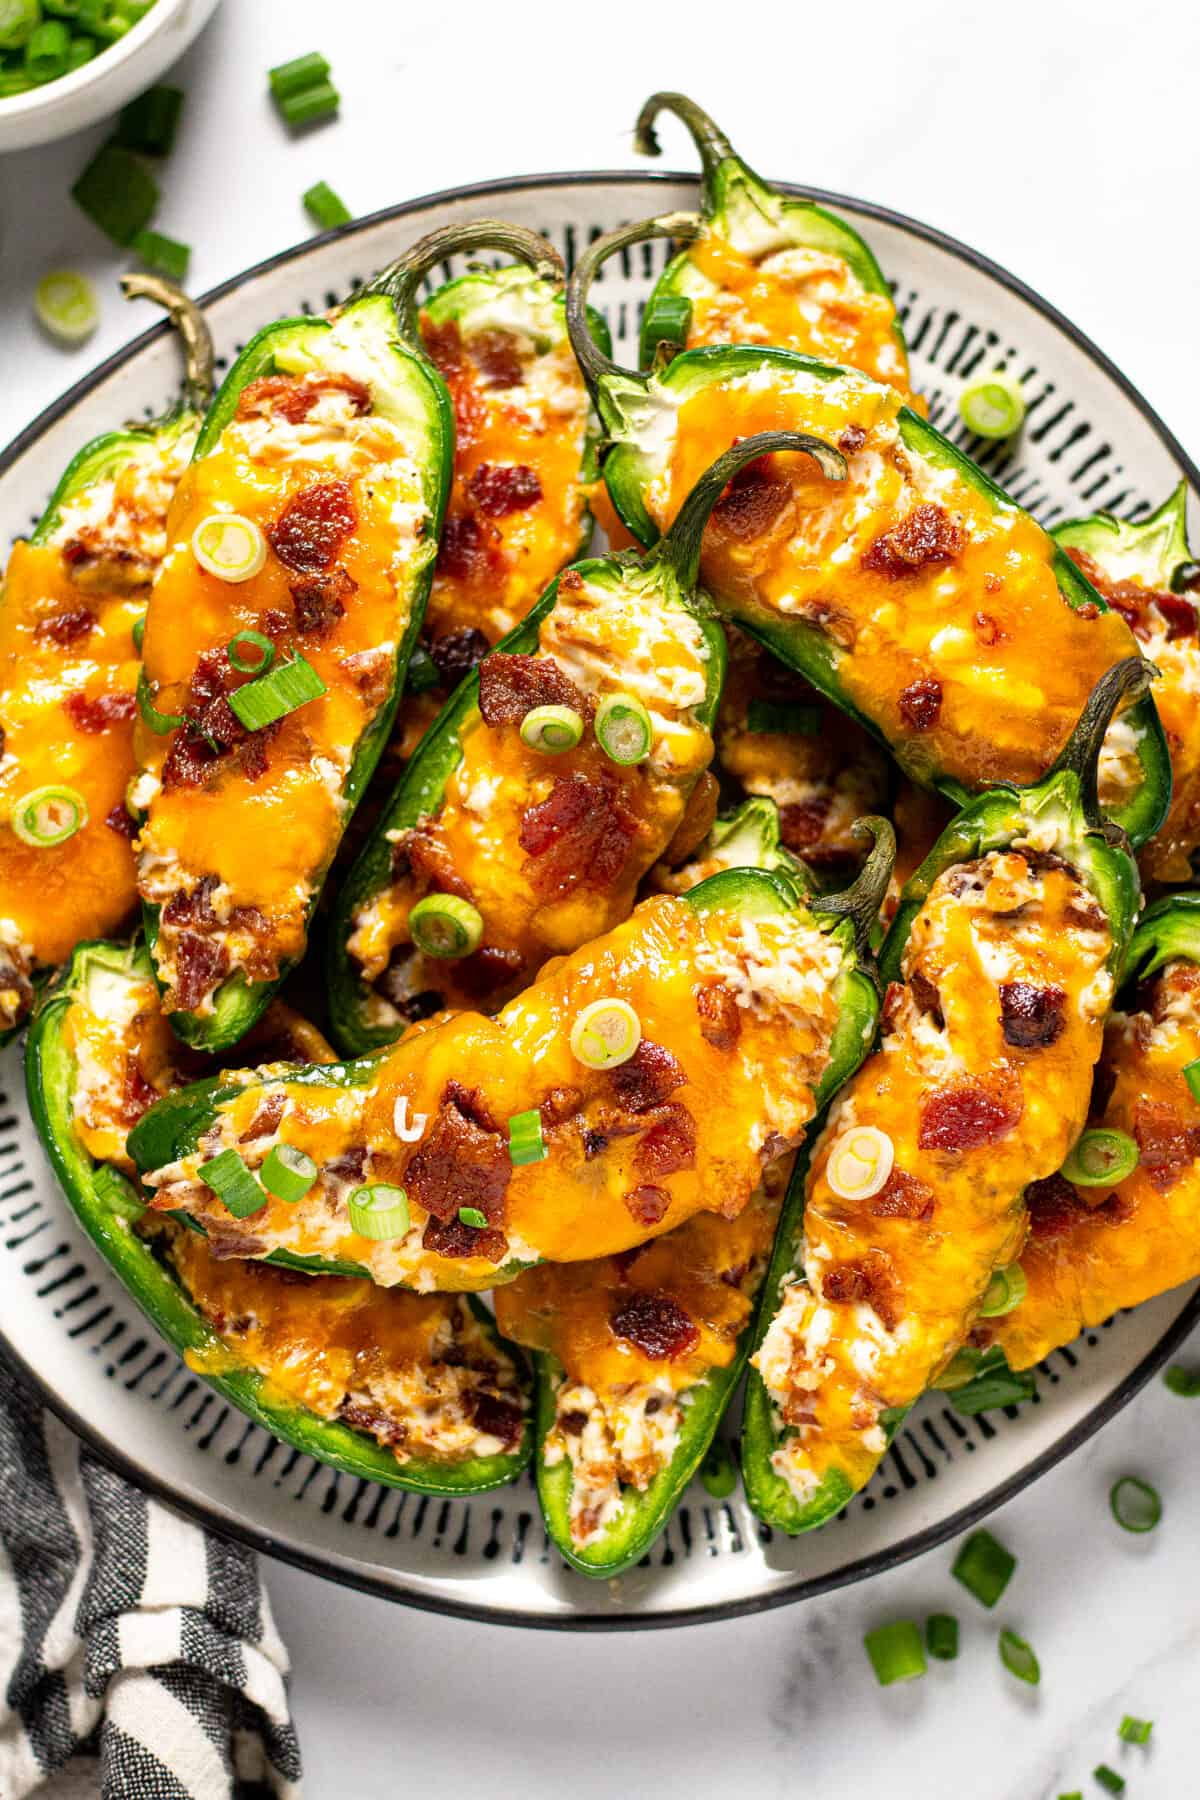 Black and white plate filled with baked jalapeno poppers garnished with green onion